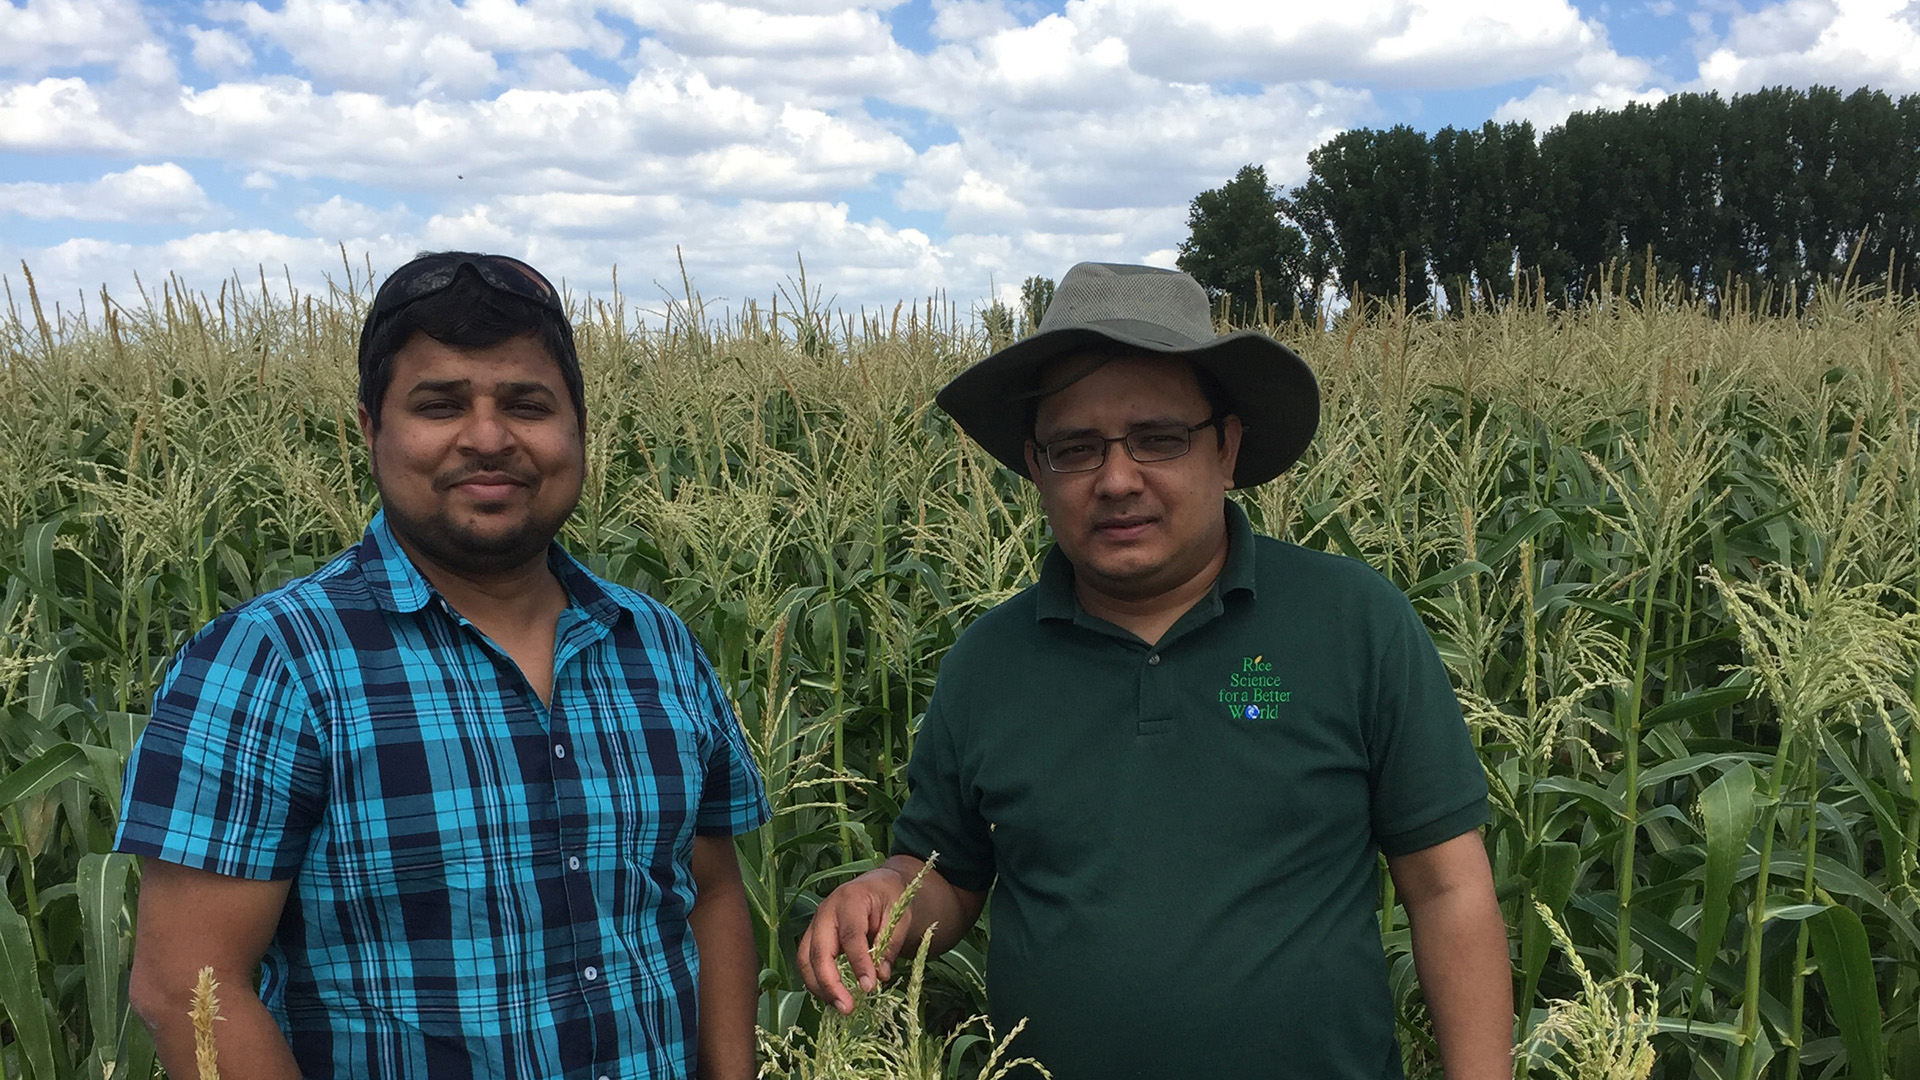 Dr Syed Rizvi and Dr Ahsanul Haque carrying out field samples as part of the research